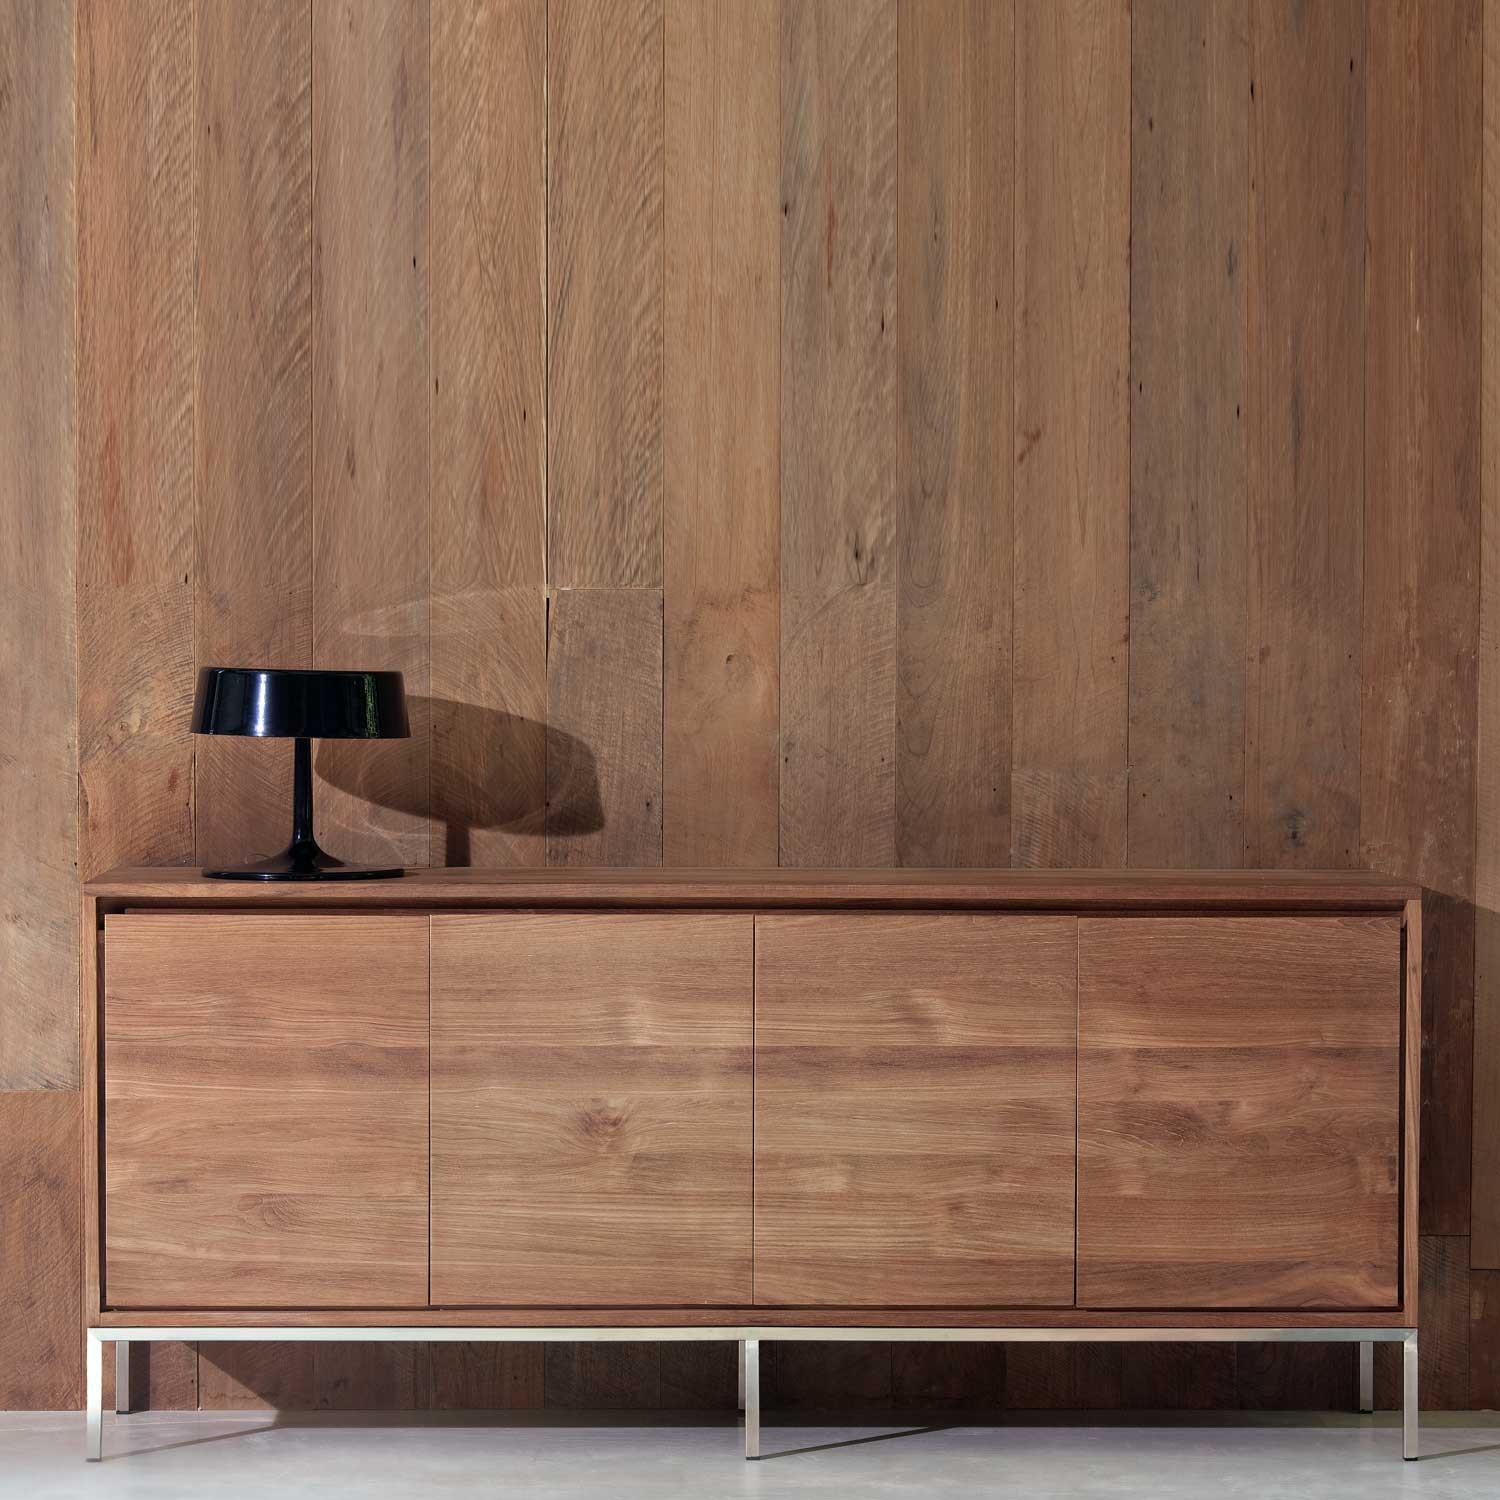 Teak Sideboard designjunction Designjunction: New Launches From Leading UK and International Brands Designjunction New Launches From Leading UK and International Design Brands 3